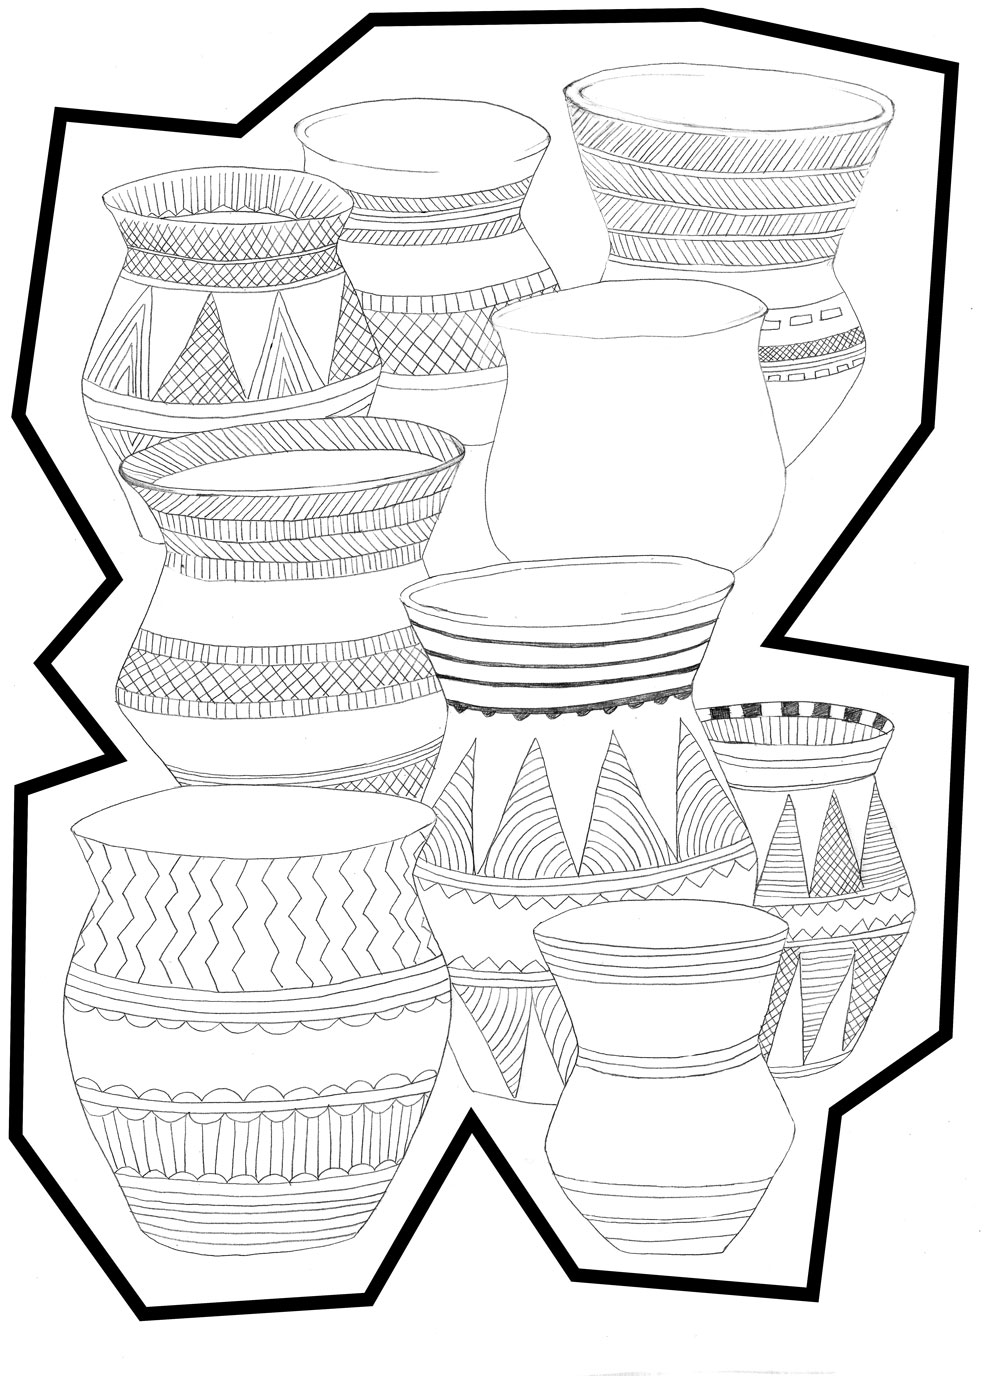 Colouring-Pots.jpg